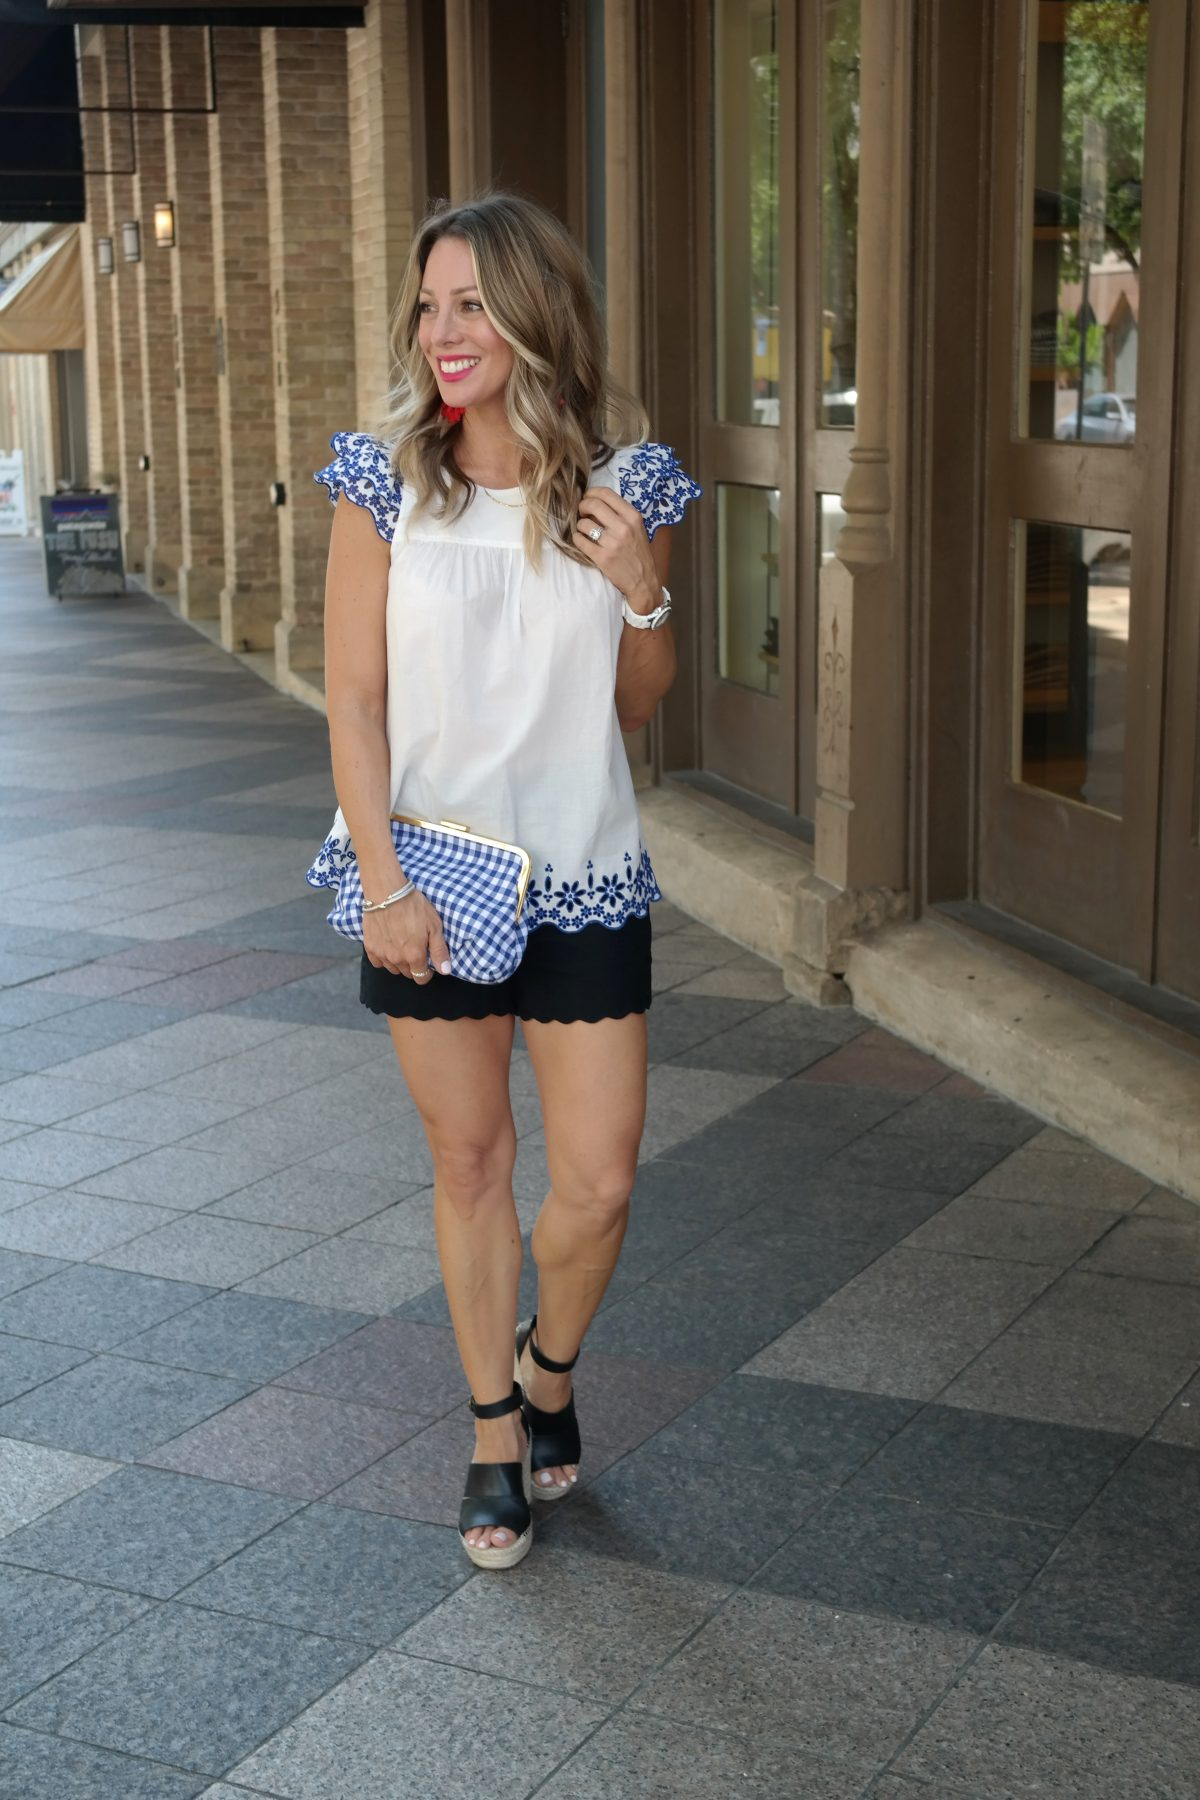 Spring & Summer outfit - Eyelet top scallop shorts and wedges